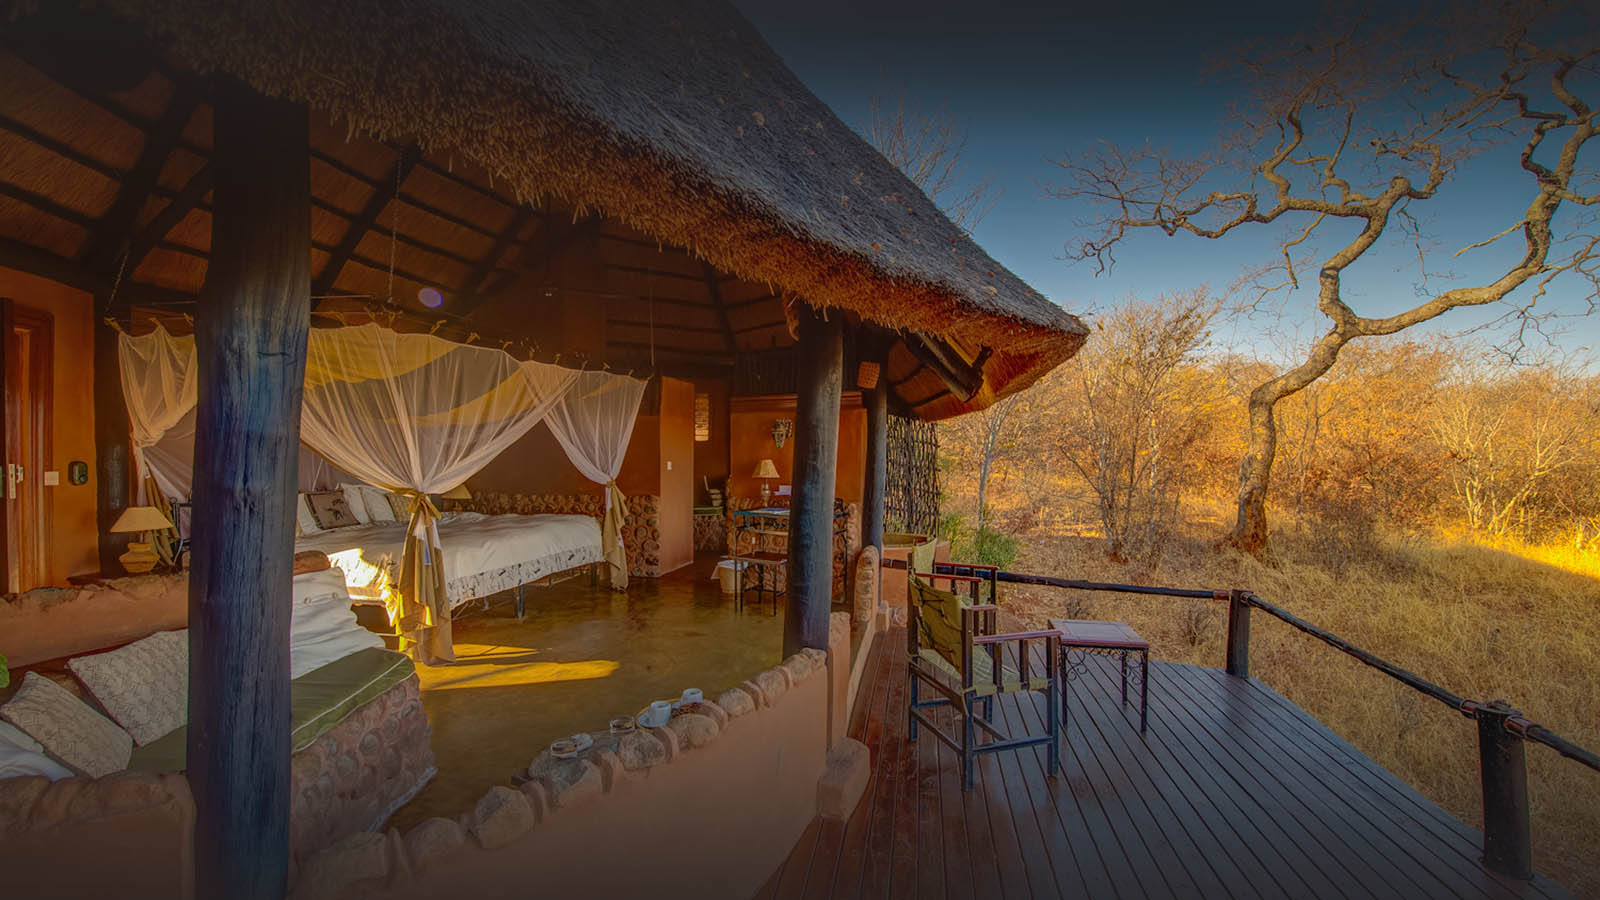 stanley safari lodge livingstone-lodges-zambia-in-style-african-styled-accommodation-rooms